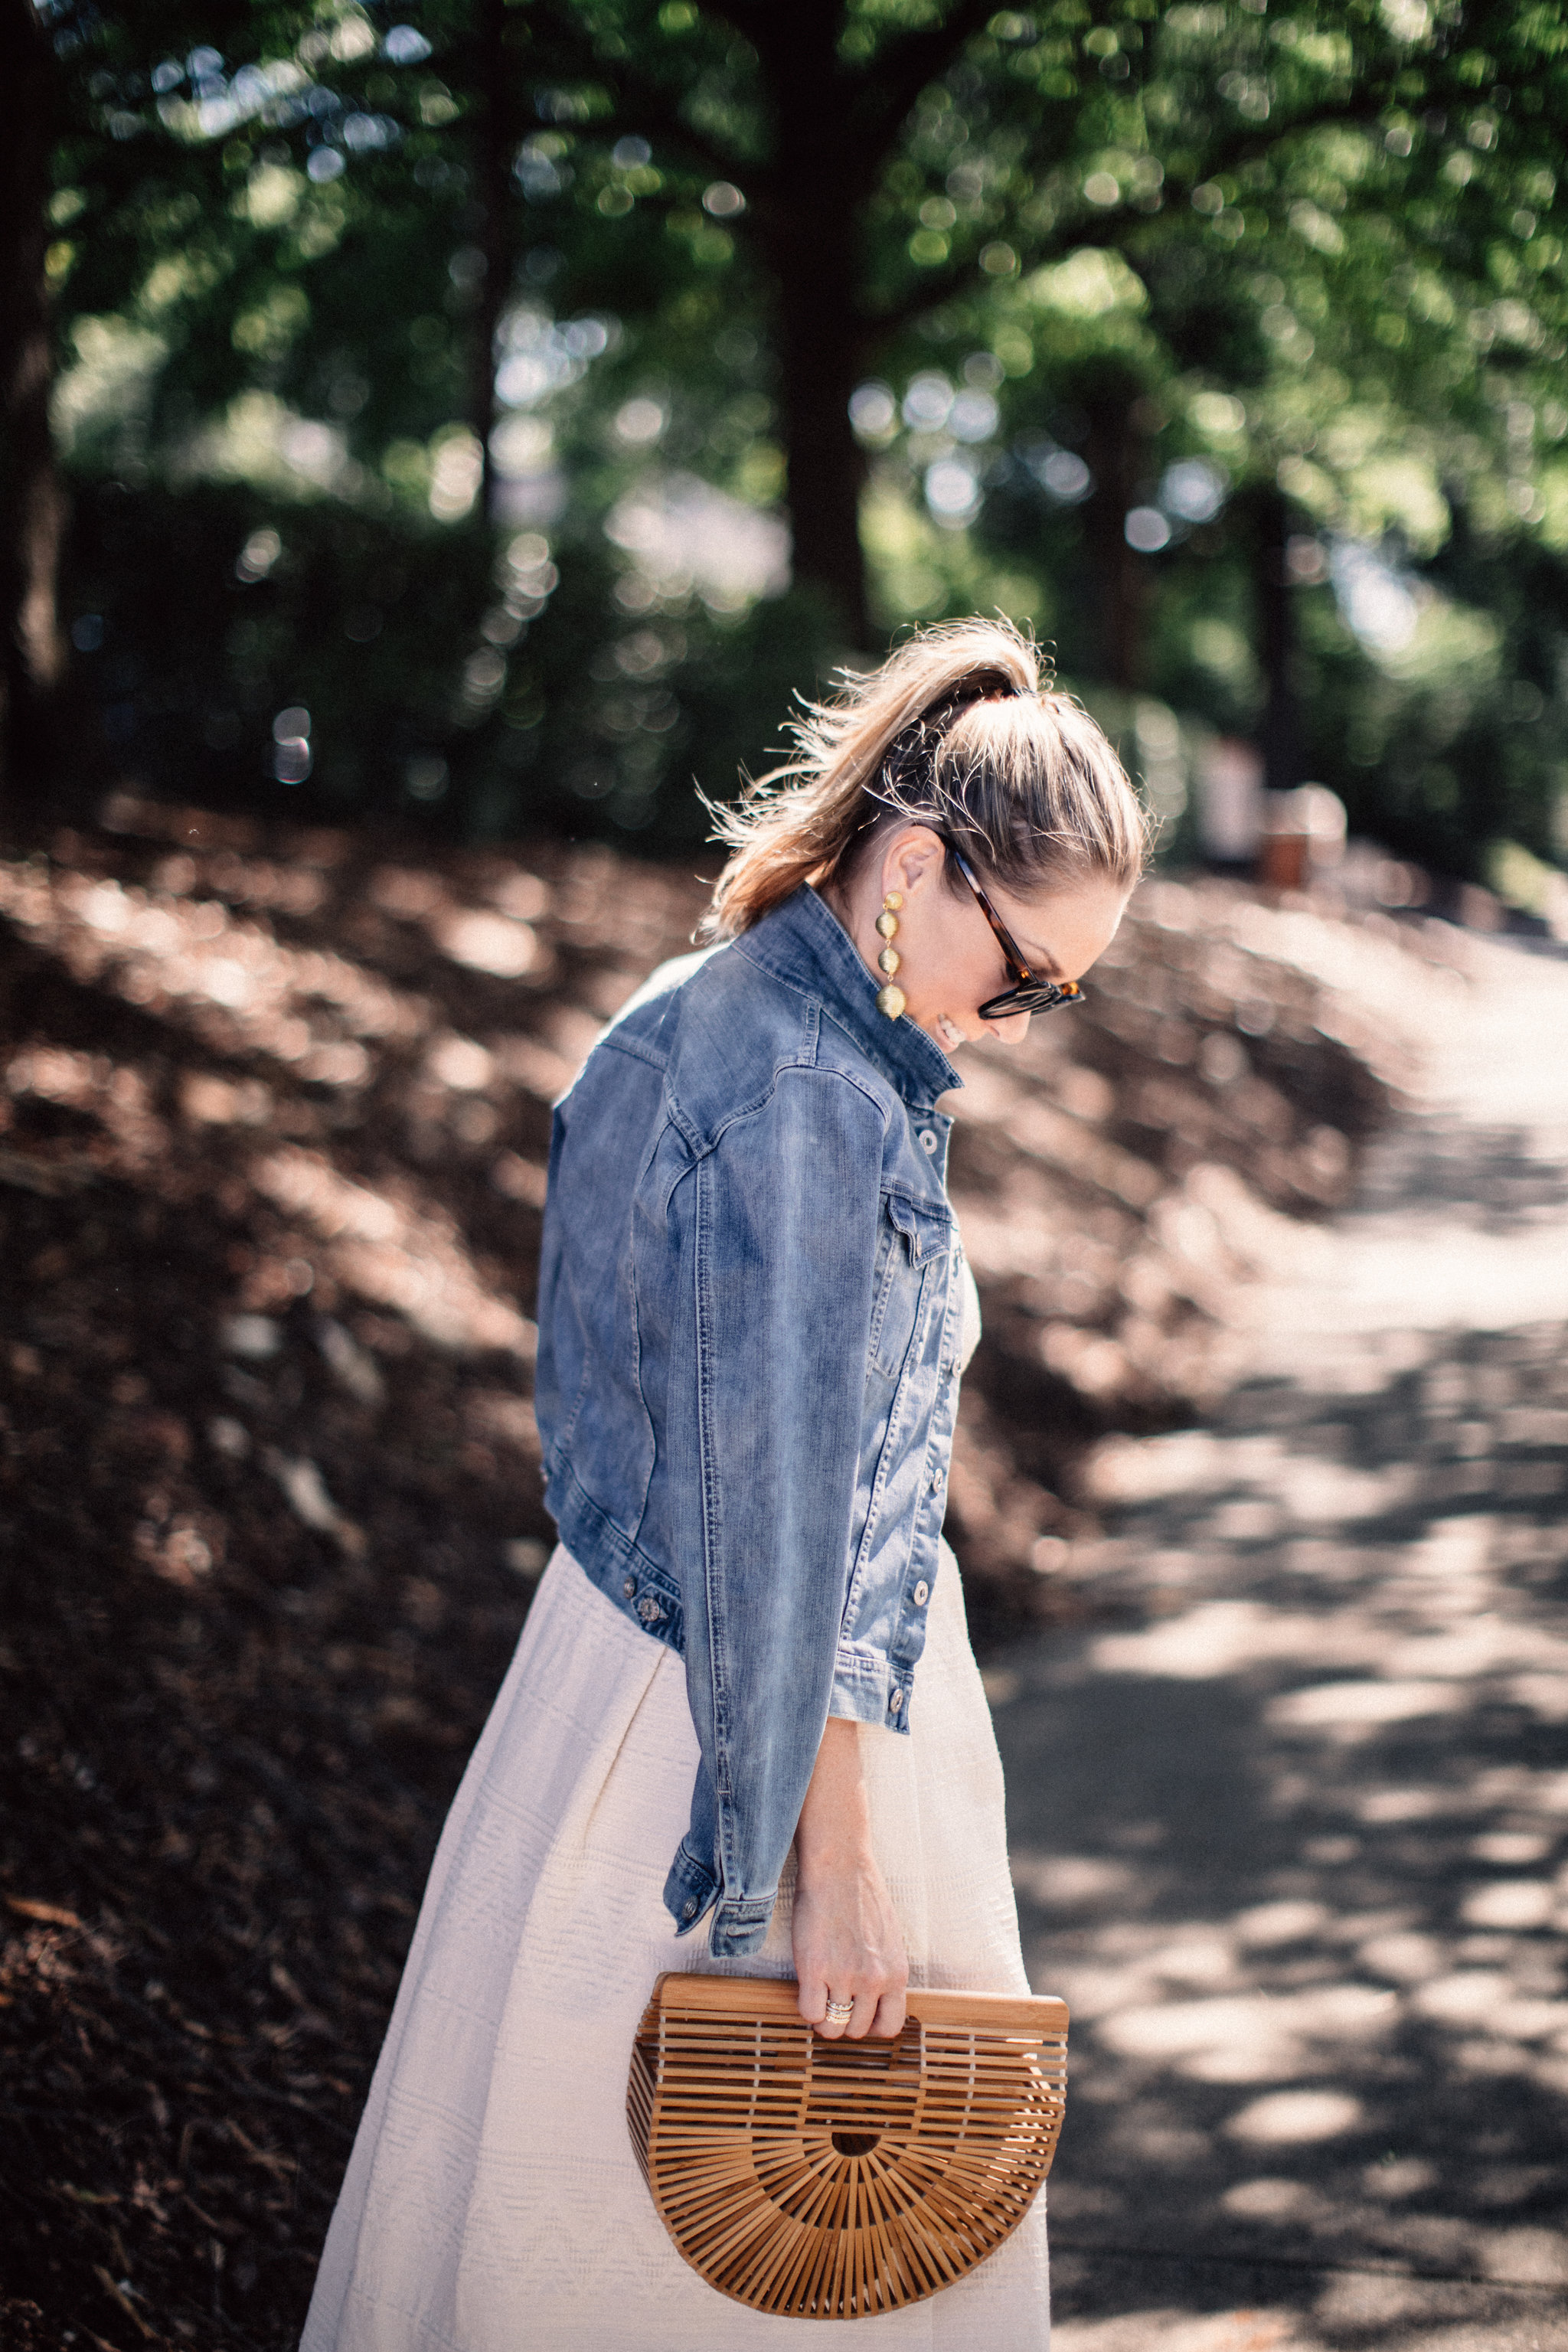 Although it still feels like Summer in the South, Fall weather is just around the corner. A denim jacket is the perfect wardrobe staple to take you from warm days to cool nights. Check out this transition piece on ECW today! - Blue Denim Jacket: The Perfect Transition Piece by North Carolina blogger Every Chic Way